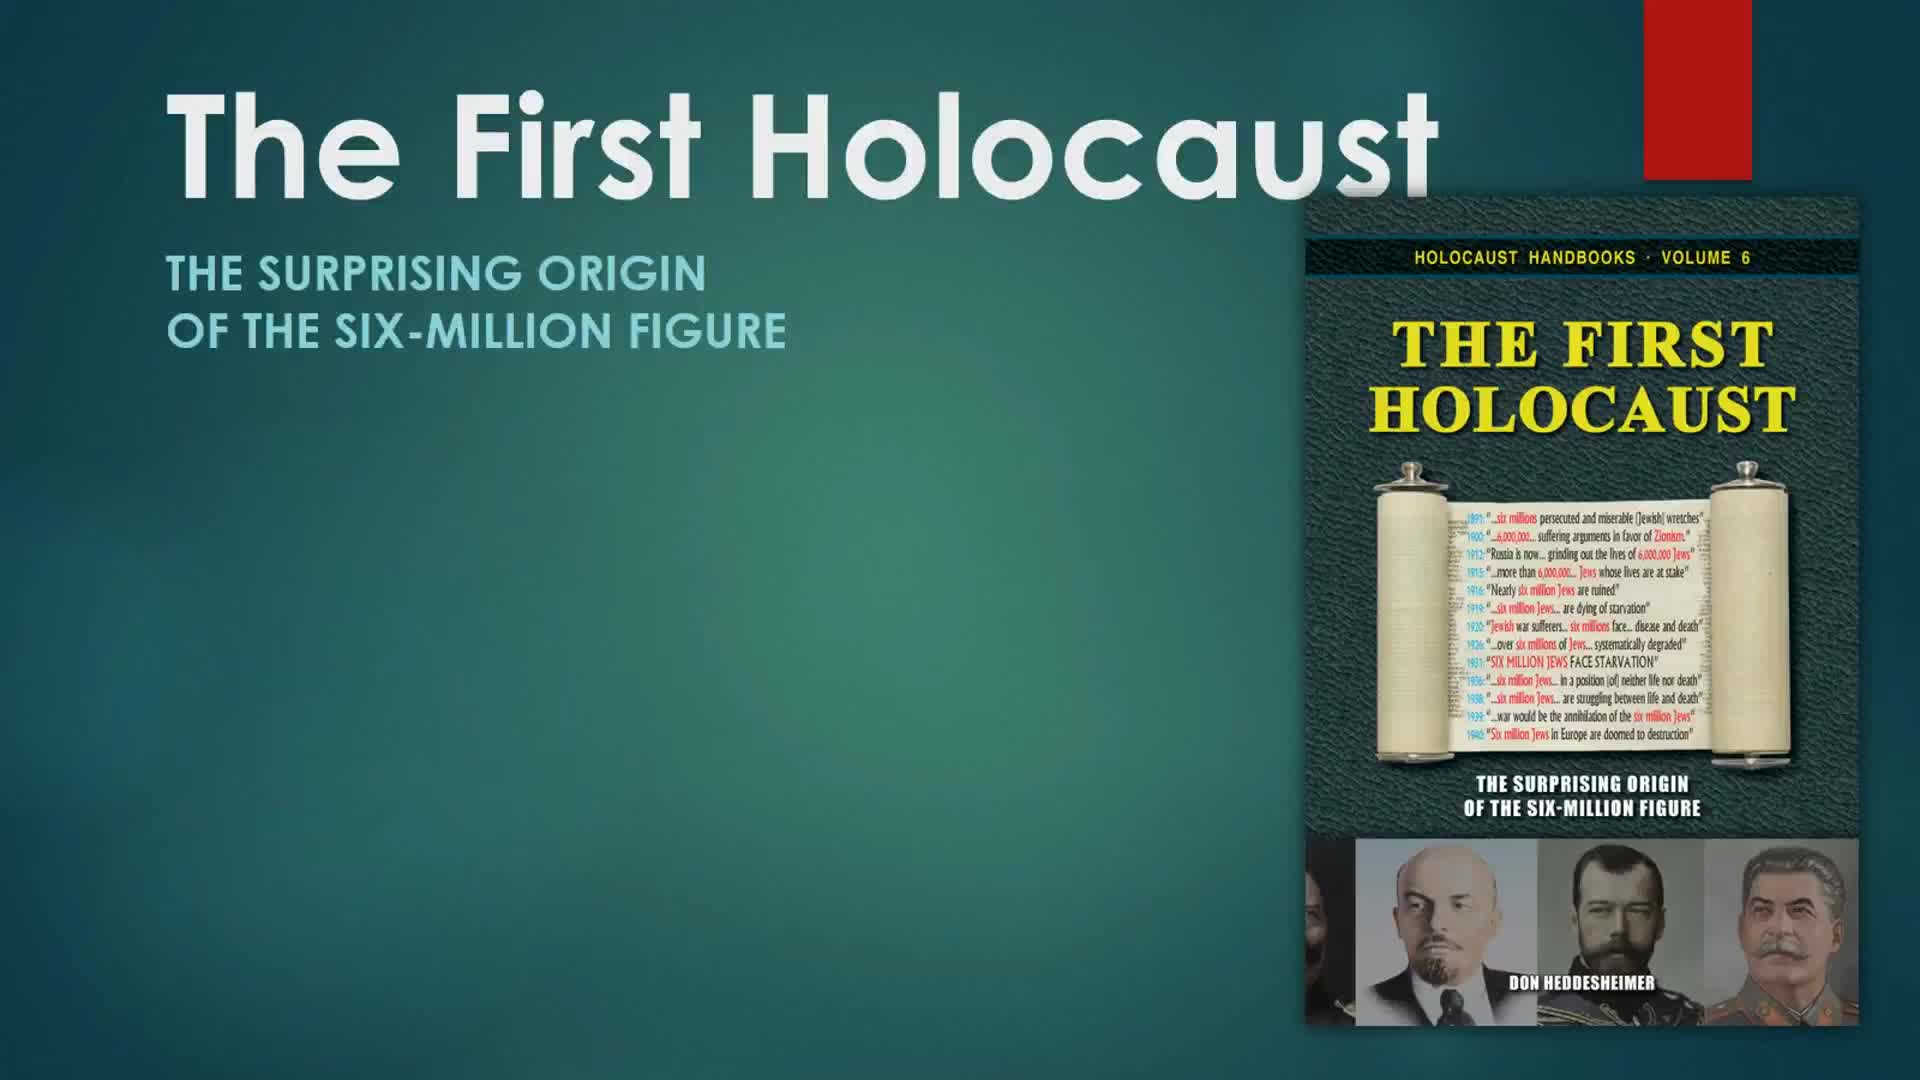 The First Holocaust - The Surprising Origin of the Six-Million Figure